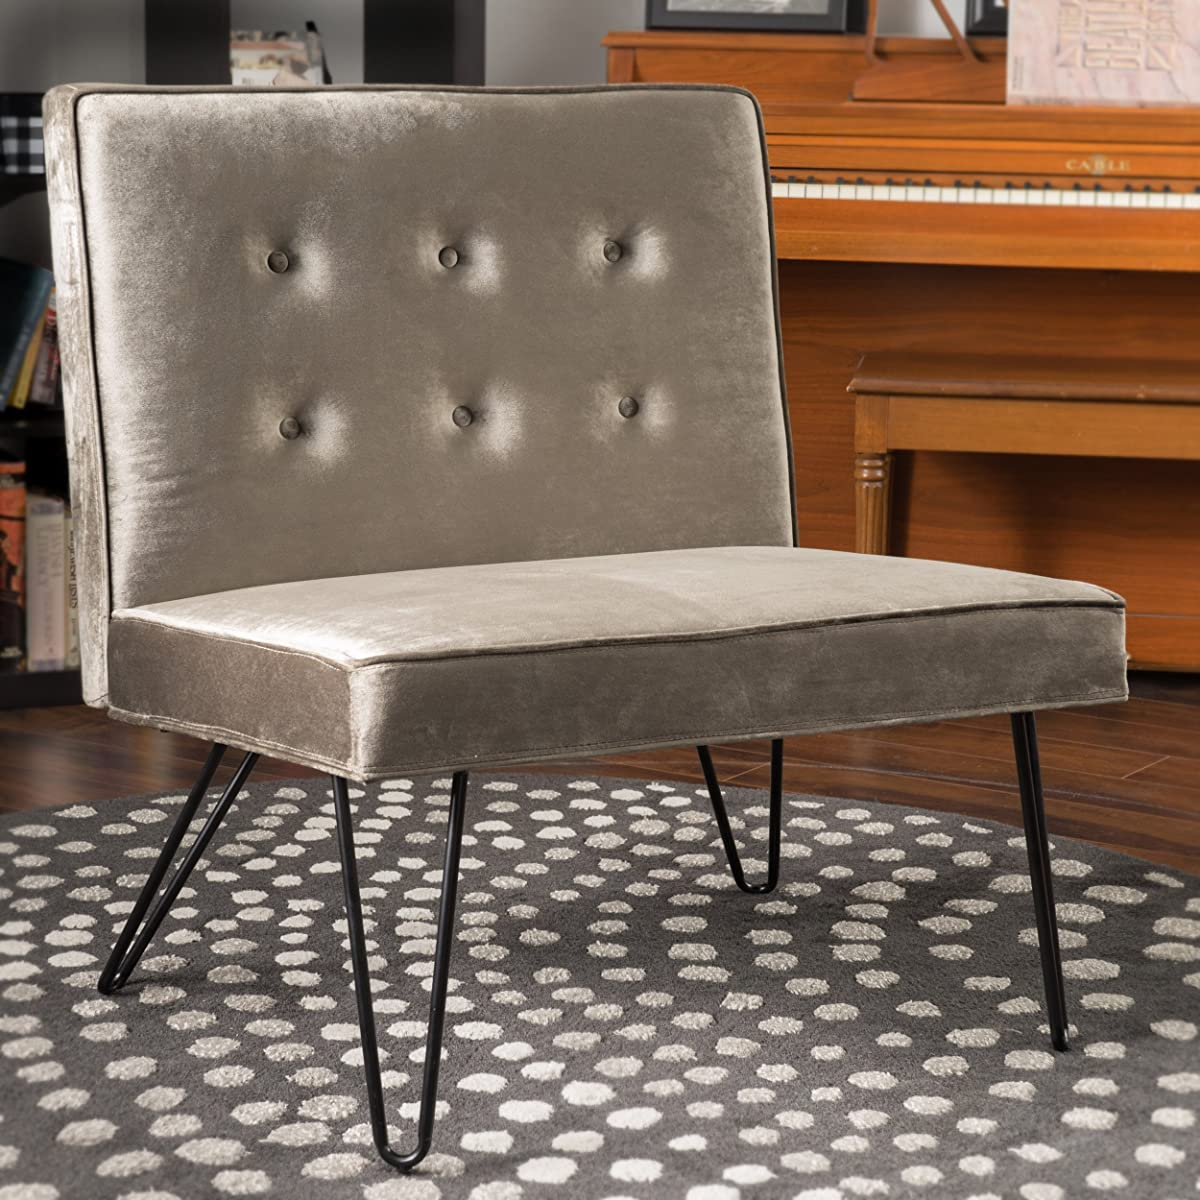 DuSoleil New Velvet Mid Century Modern Armless Hair Pin Leg Chair (Grey)